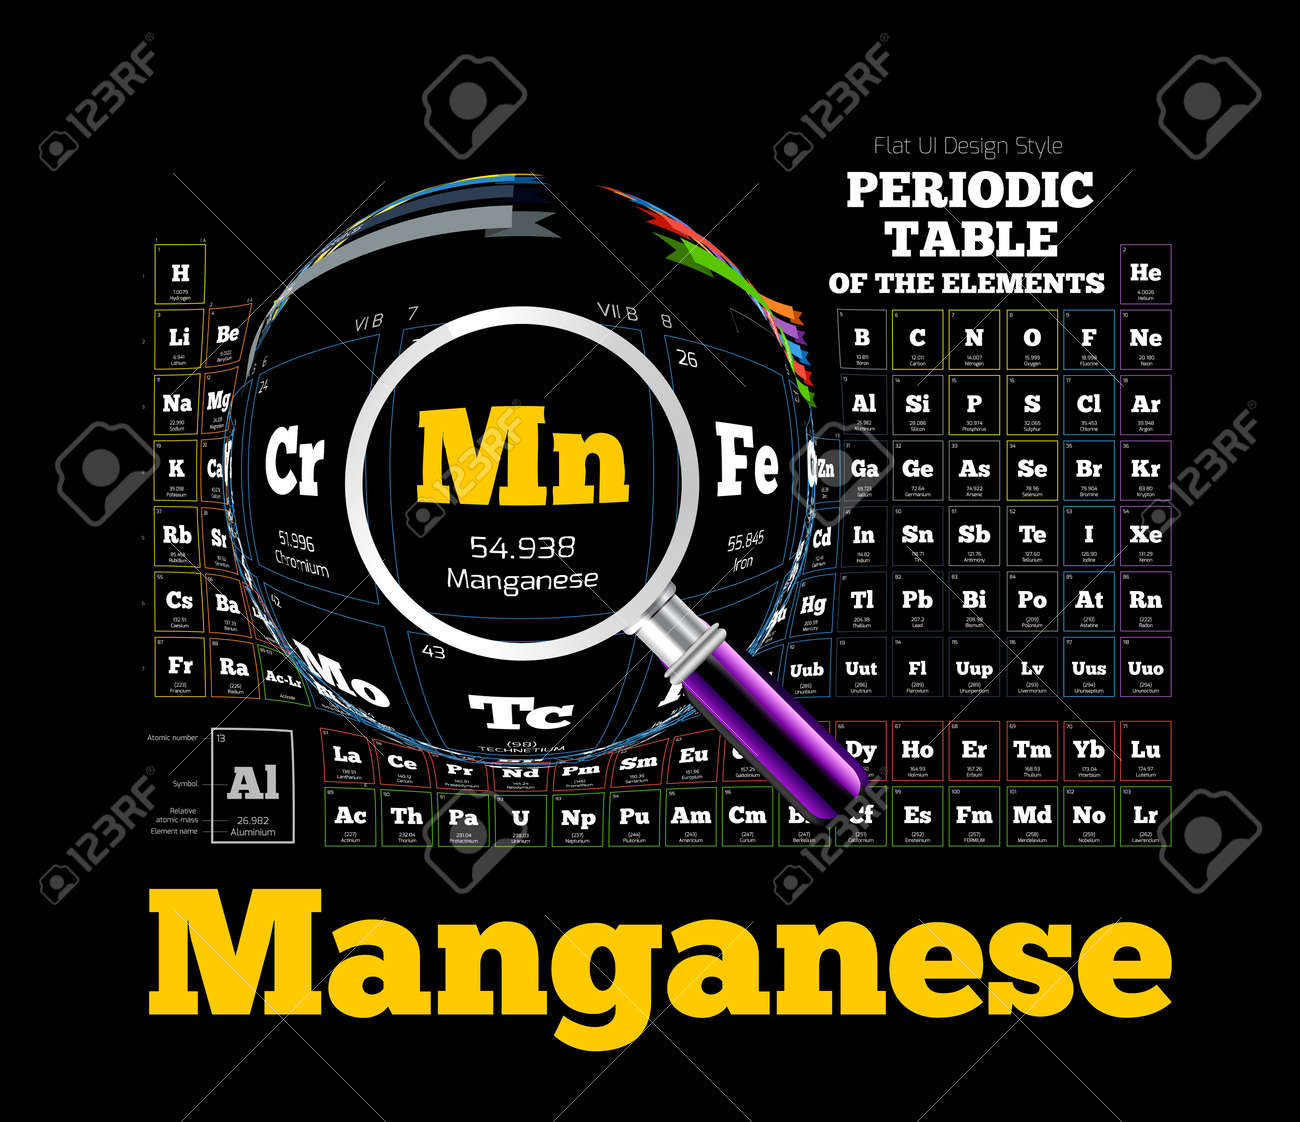 Mn symbol periodic table choice image periodic table images kr symbol periodic table images periodic table images mn symbol periodic table choice image periodic table gamestrikefo Image collections